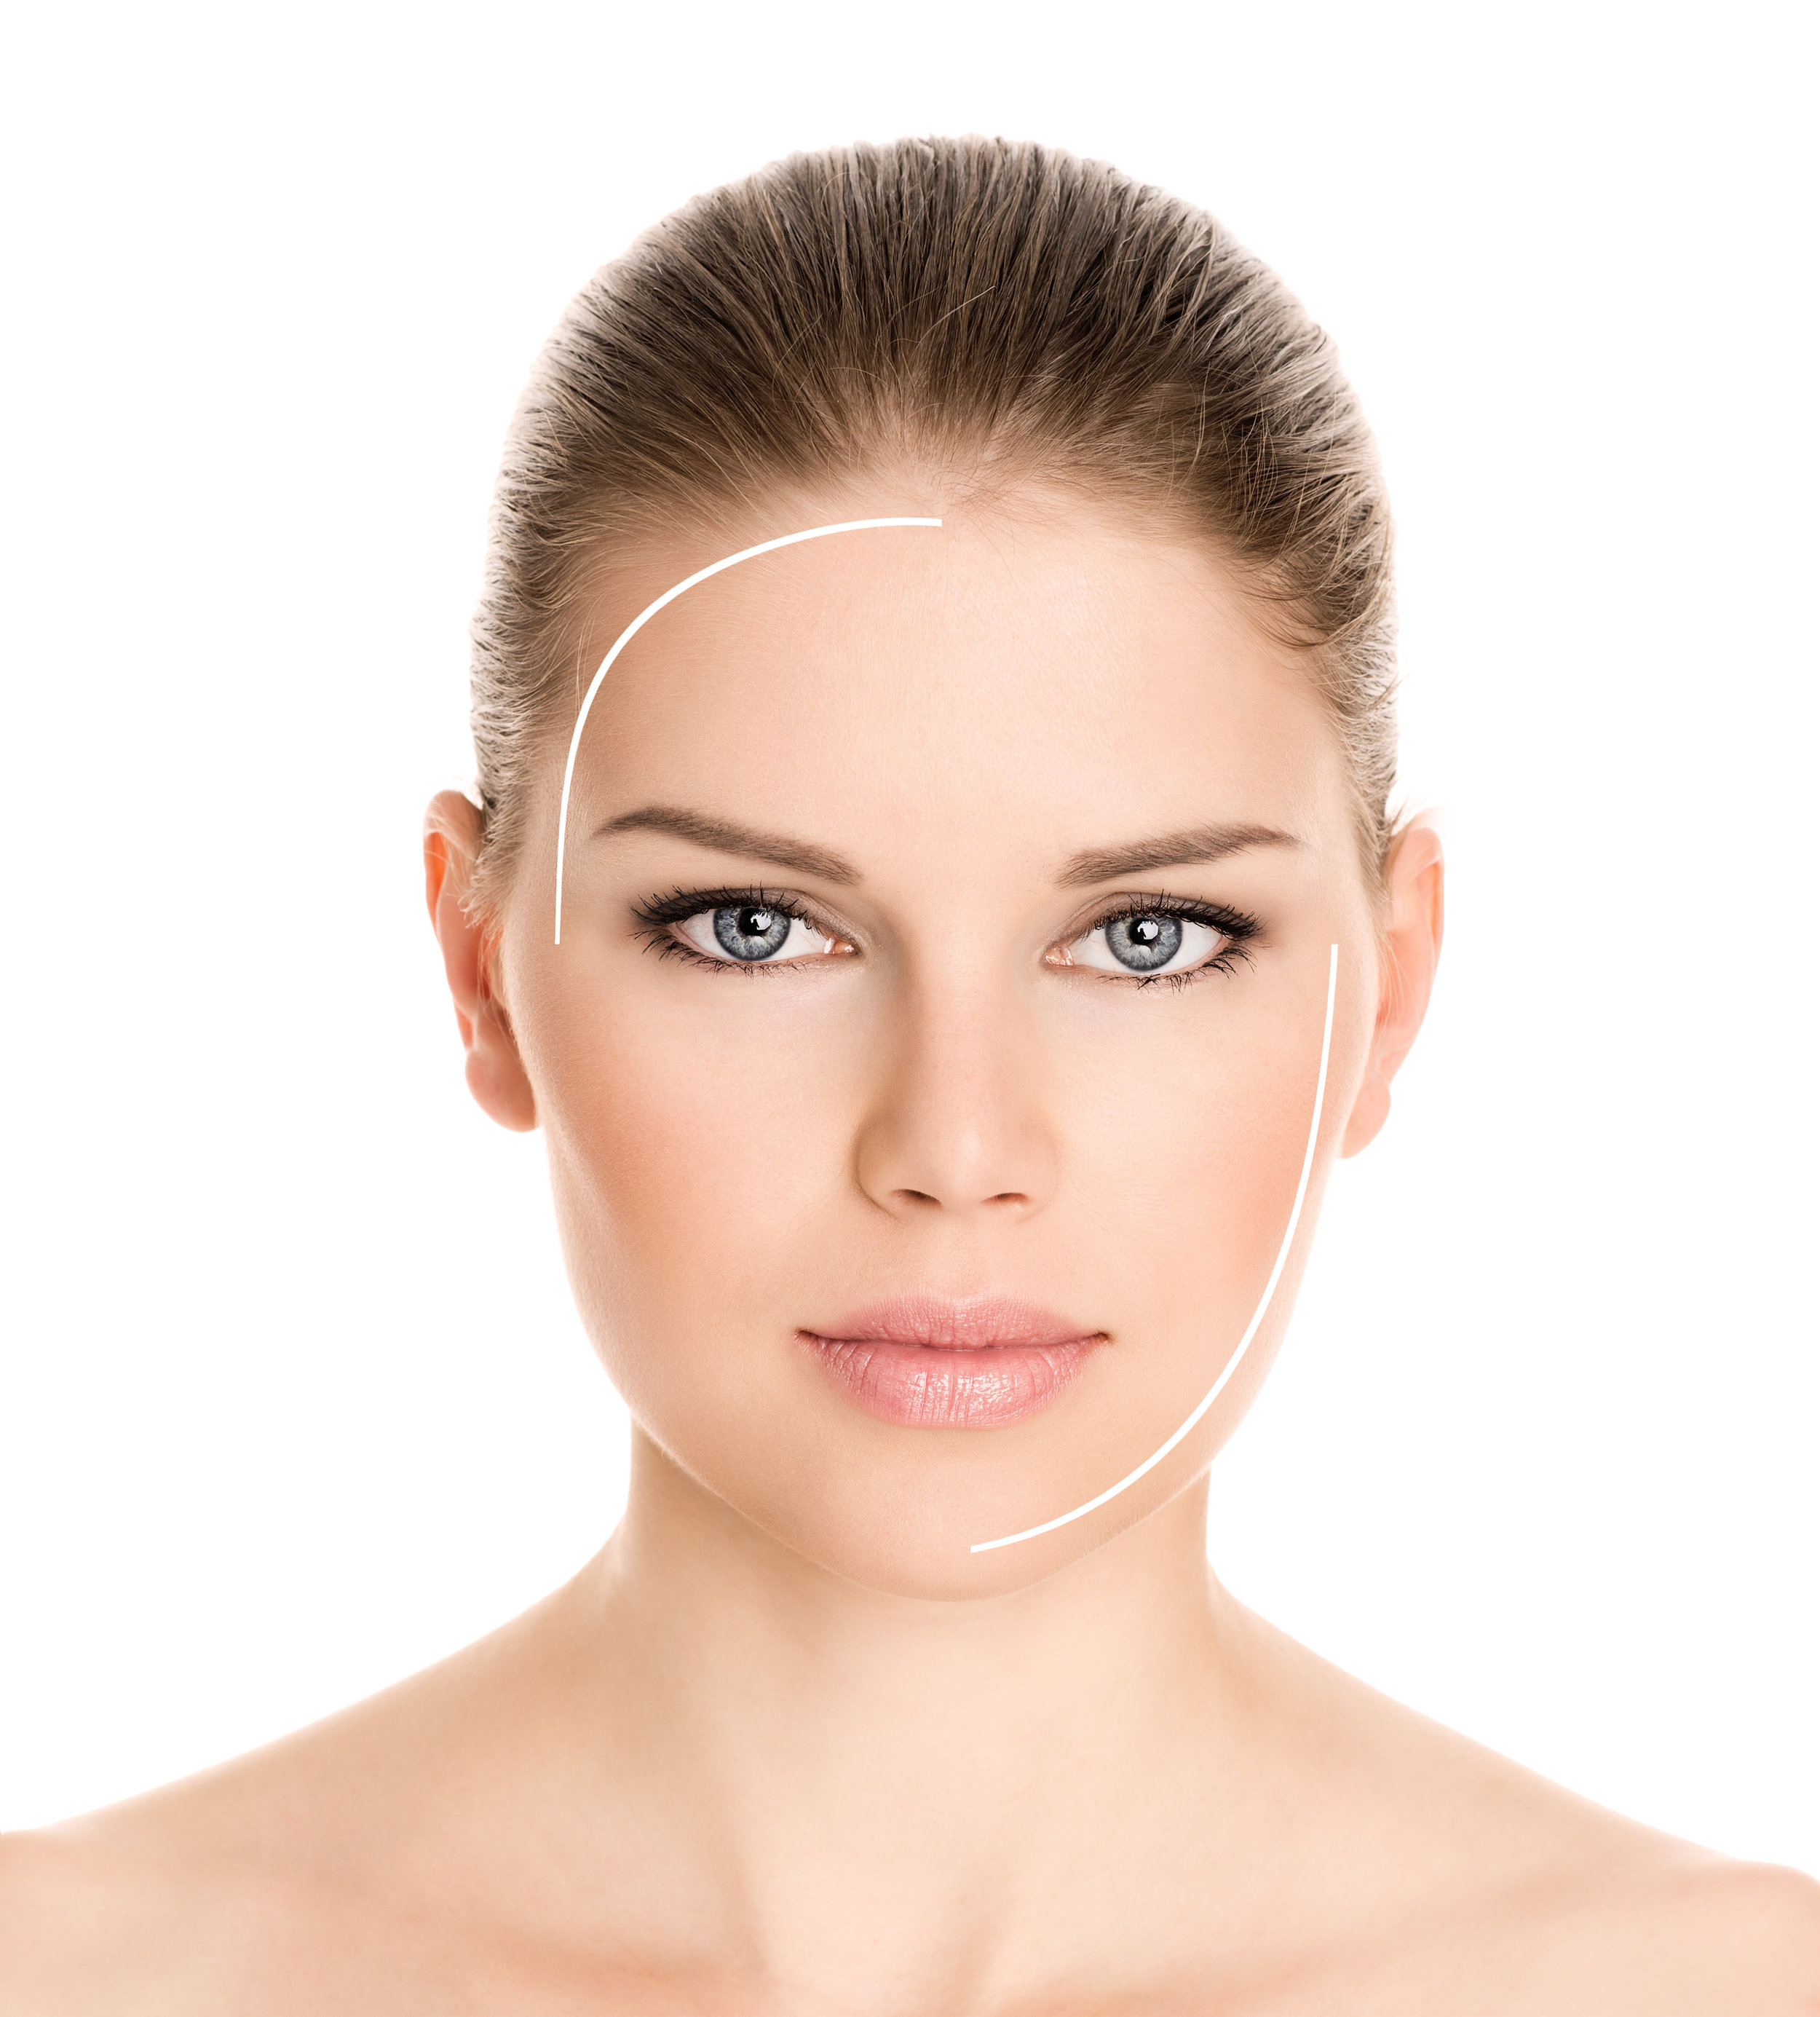 Botox - Beauty and cosmetics are very essential. Book your appointment now. Ask any question and gladly we will answer them all.Careful analysis and results oriented consultation is available to you now.Consult fees will be credited towards your treatment cost if the treatment plan is accepted.